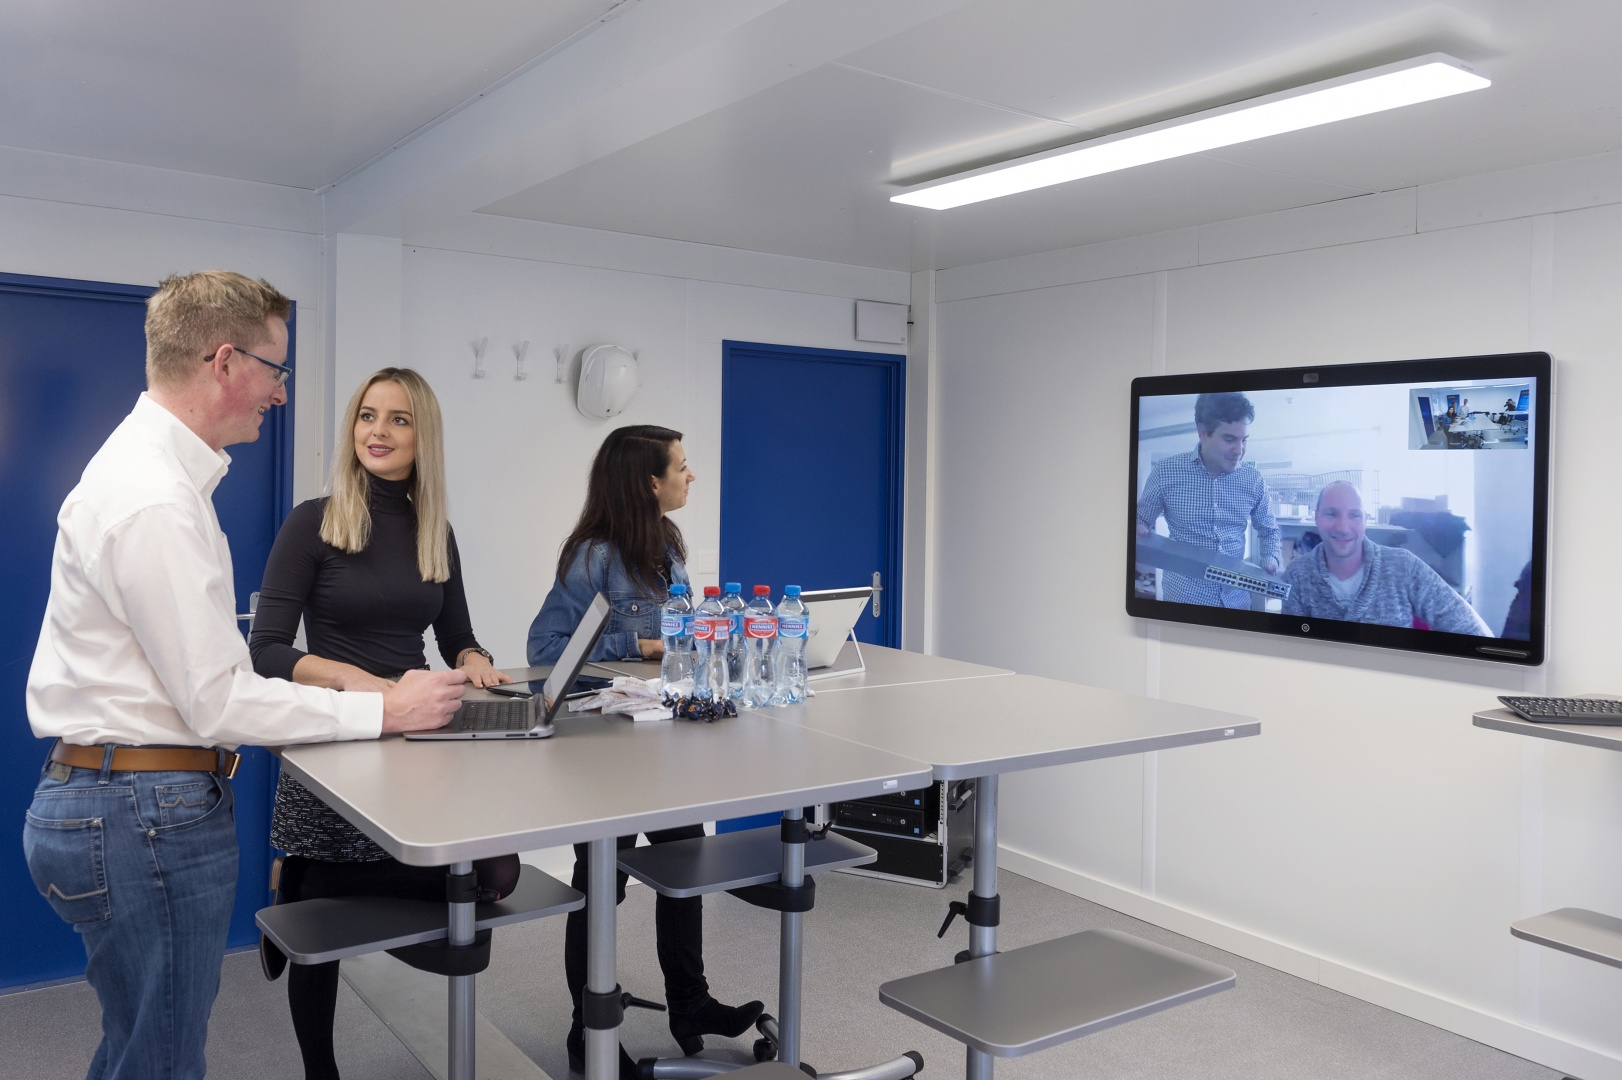 Video Conferencing dans Alpiq BIM Room © Alpiq InTec Schweiz AG, Webereiweg 6, 4802 Strengelbach